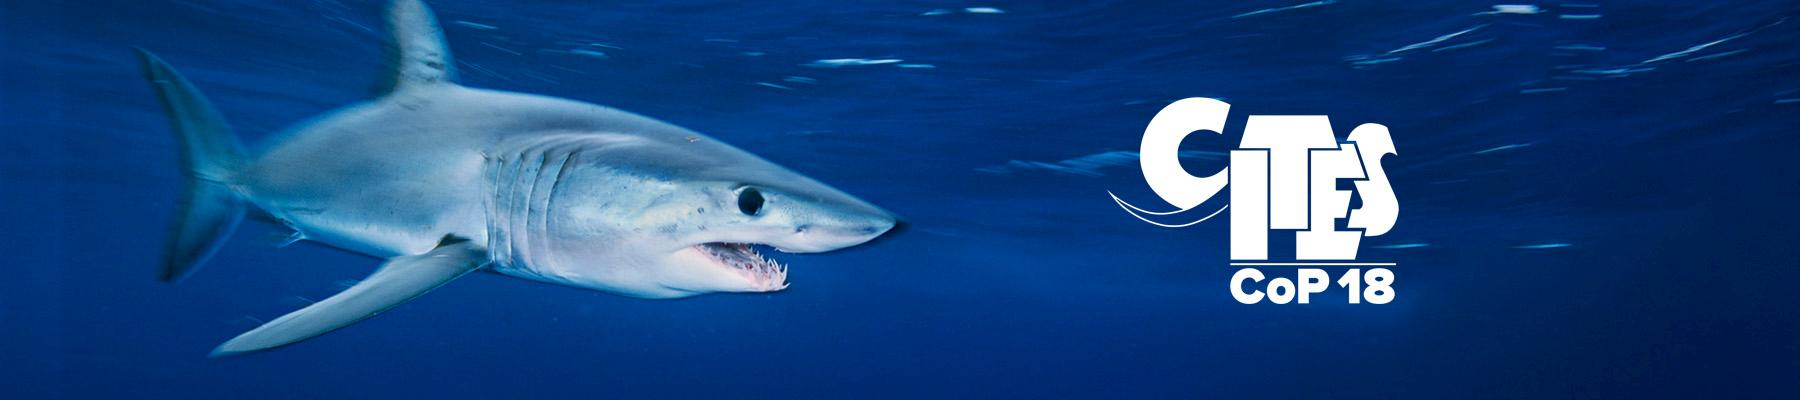 Mako Shark Isurus oxyrinchus, proposed for listing in CITES Appendix II. Photo: Brian J. Skerry / National Geographic Stock / WWF